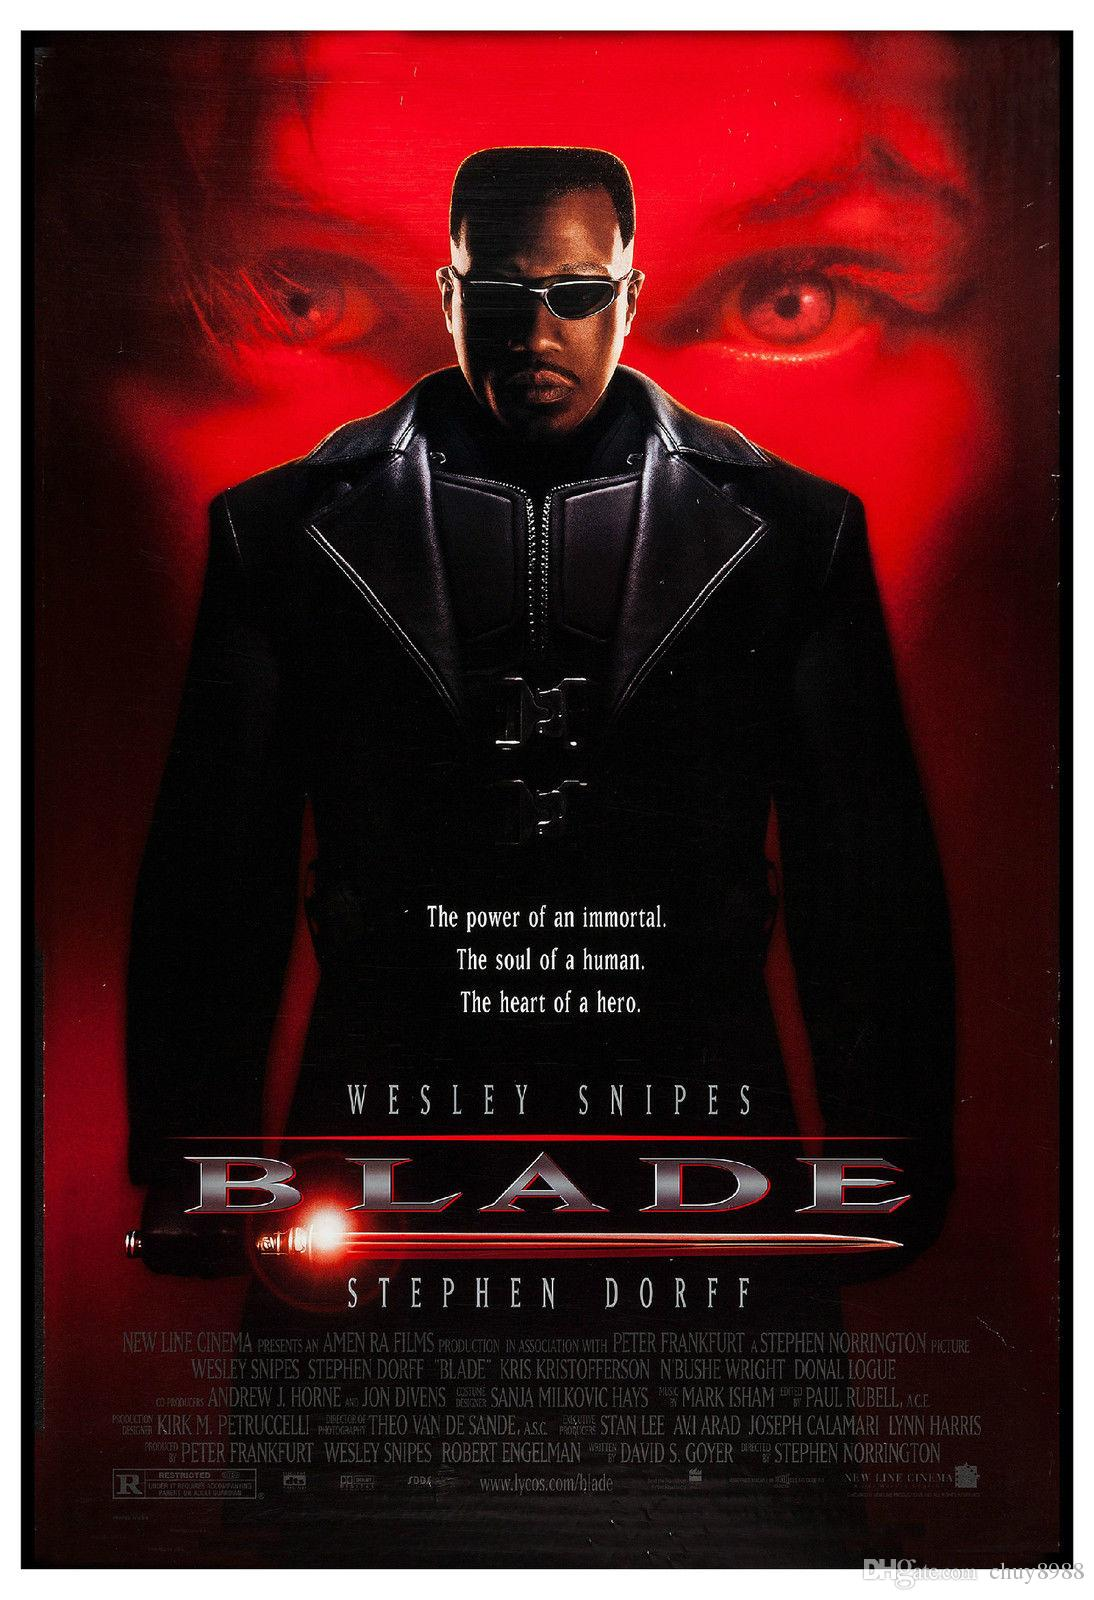 2020 Horror Blade Wesley Snipes Usa Movie Poster 1998 Large Format Art Silk Print Poster 24x36inch60x90cm001 From Chuy8988 10 93 Dhgate Com